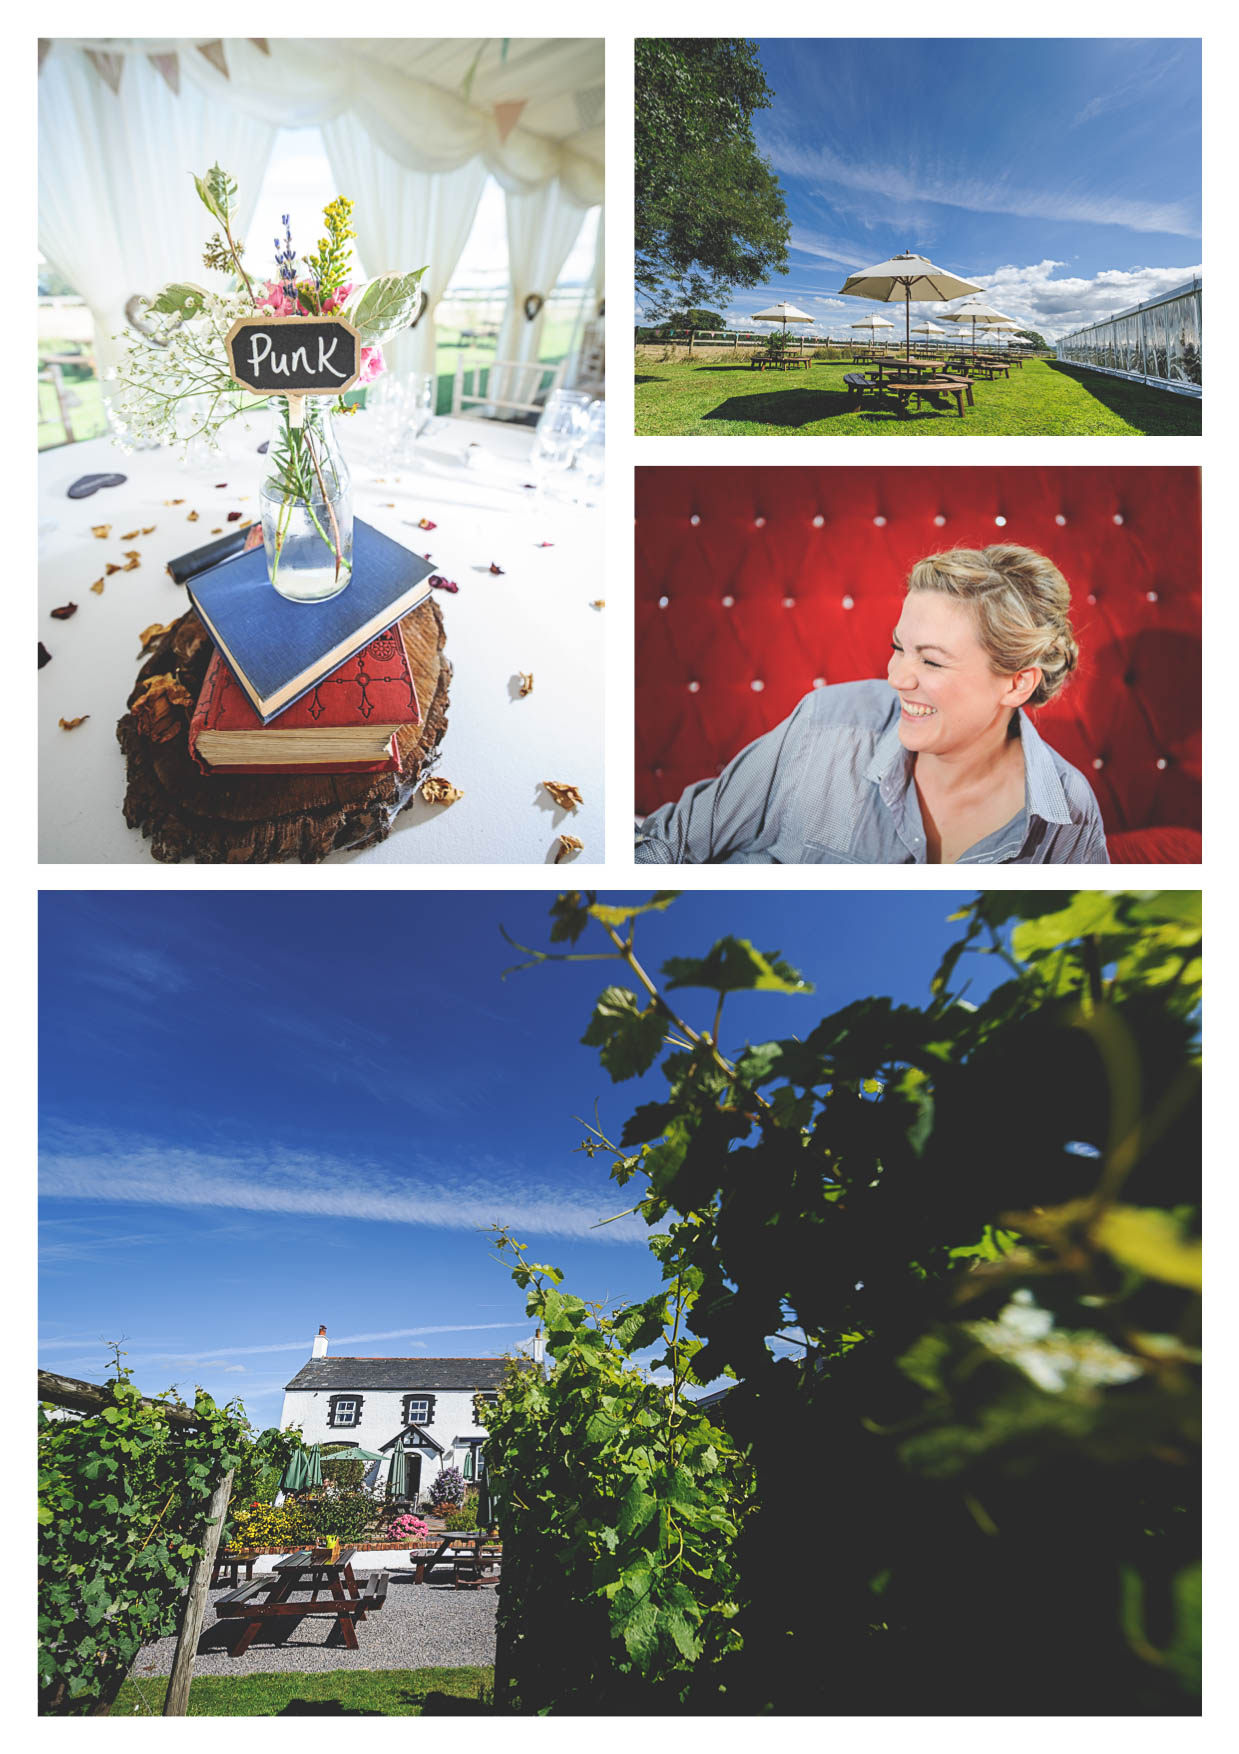 Photographs of llanerch vineyard during a wedding in the summertime